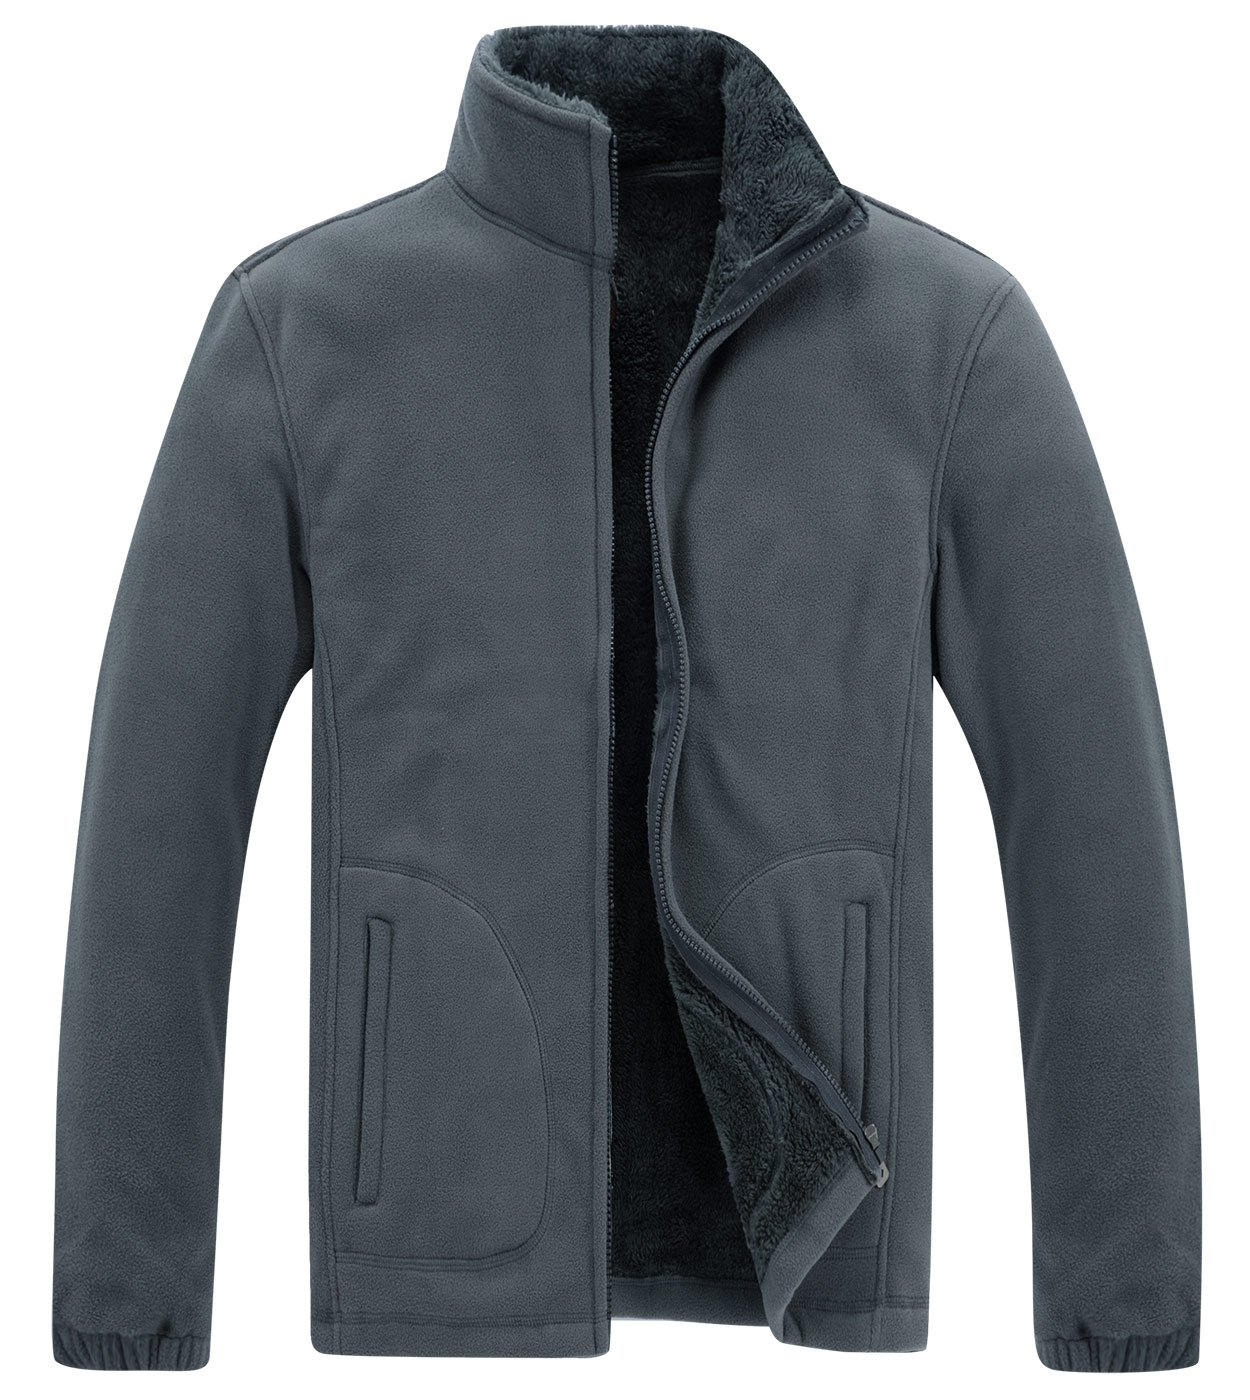 847e8e2bb0f Amazon.com  Panegy Mens Fleece Jackets Full Zip Up Winter Warm Thermal Coats  Outdoors Sports Wear  Sports   Outdoors